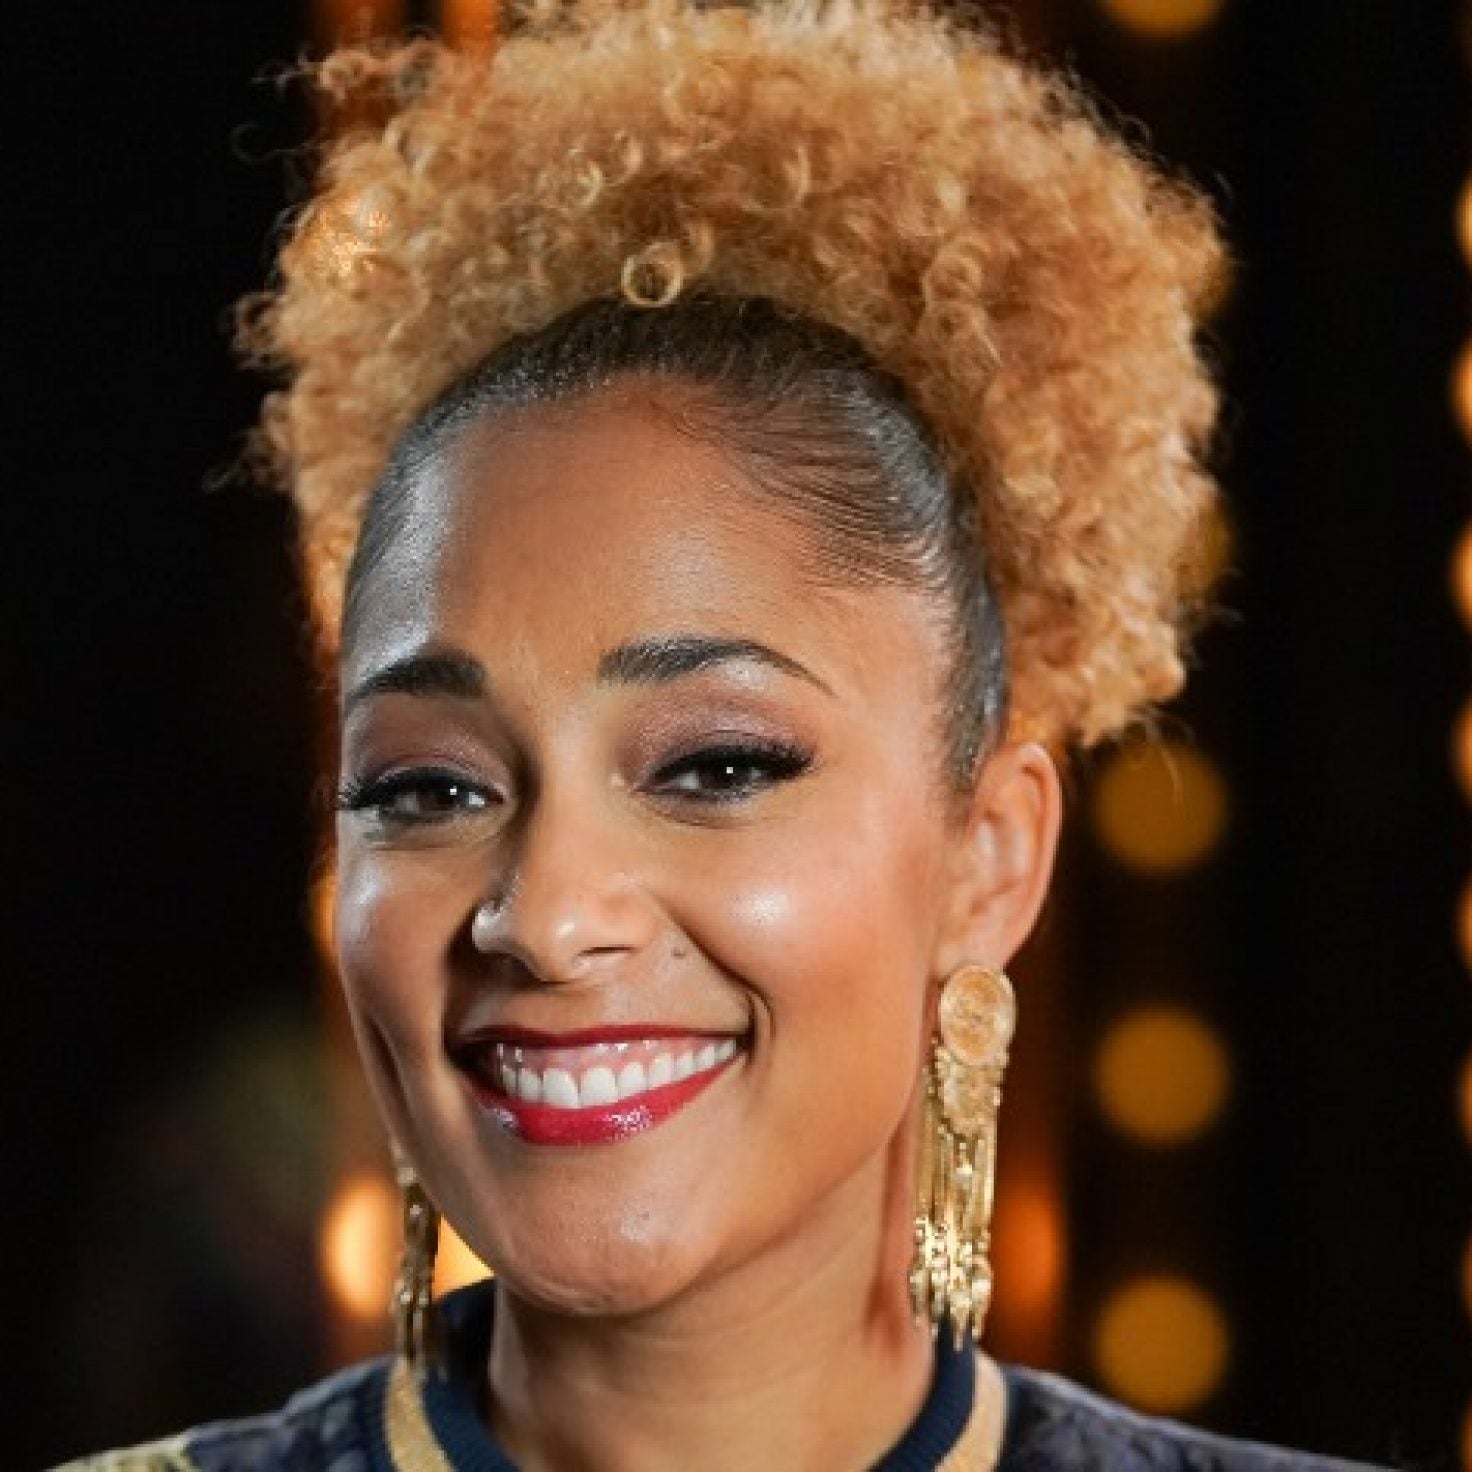 Amanda Seales' Pre-Show Halo Braid Was The Beauty Highlight Of The BET Awards